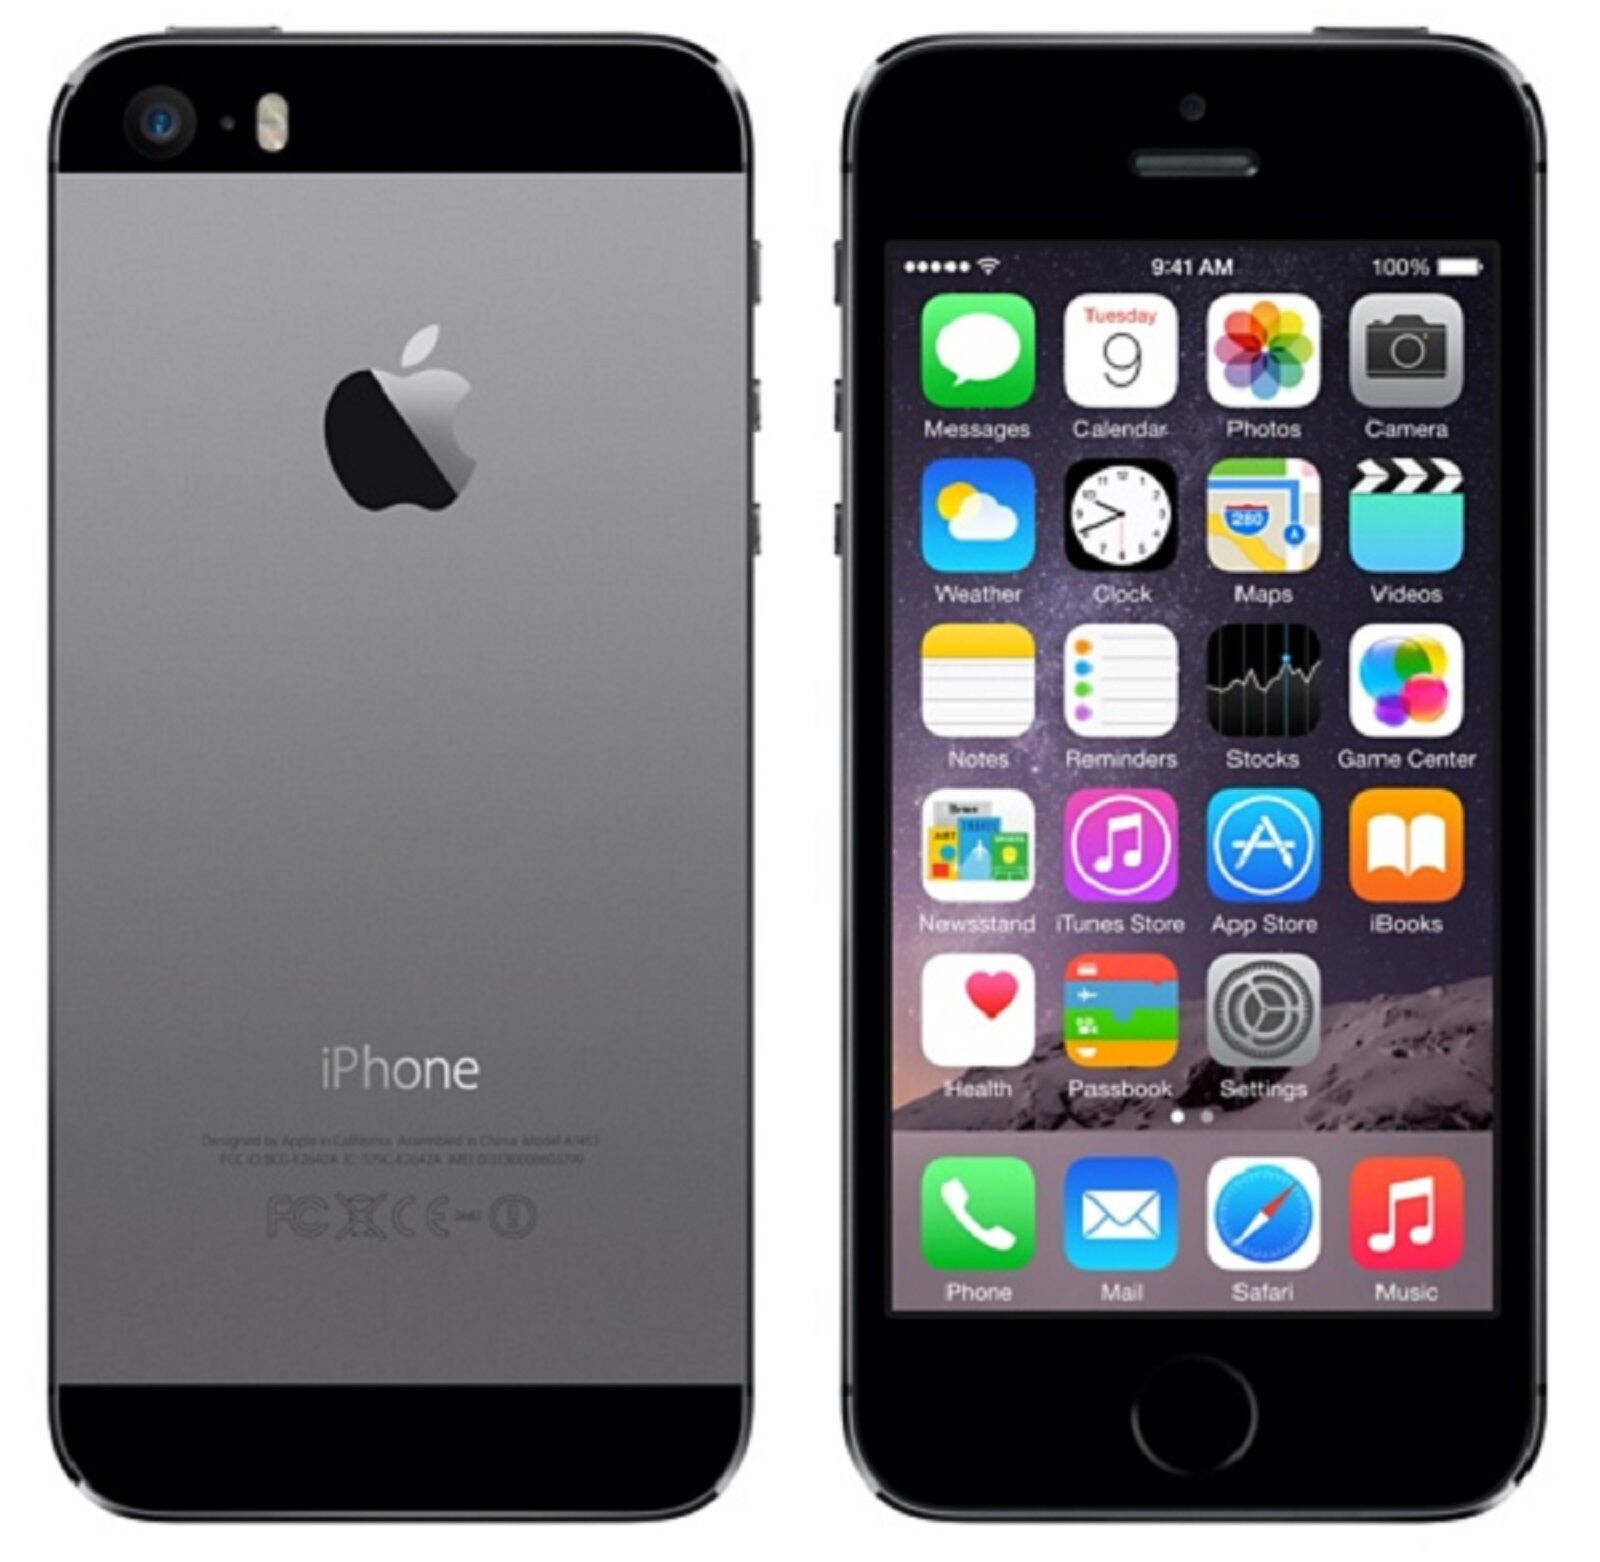 tmobile iphone 5s apple iphone 5s 16gb space gray at amp t mobile unlocked 13112